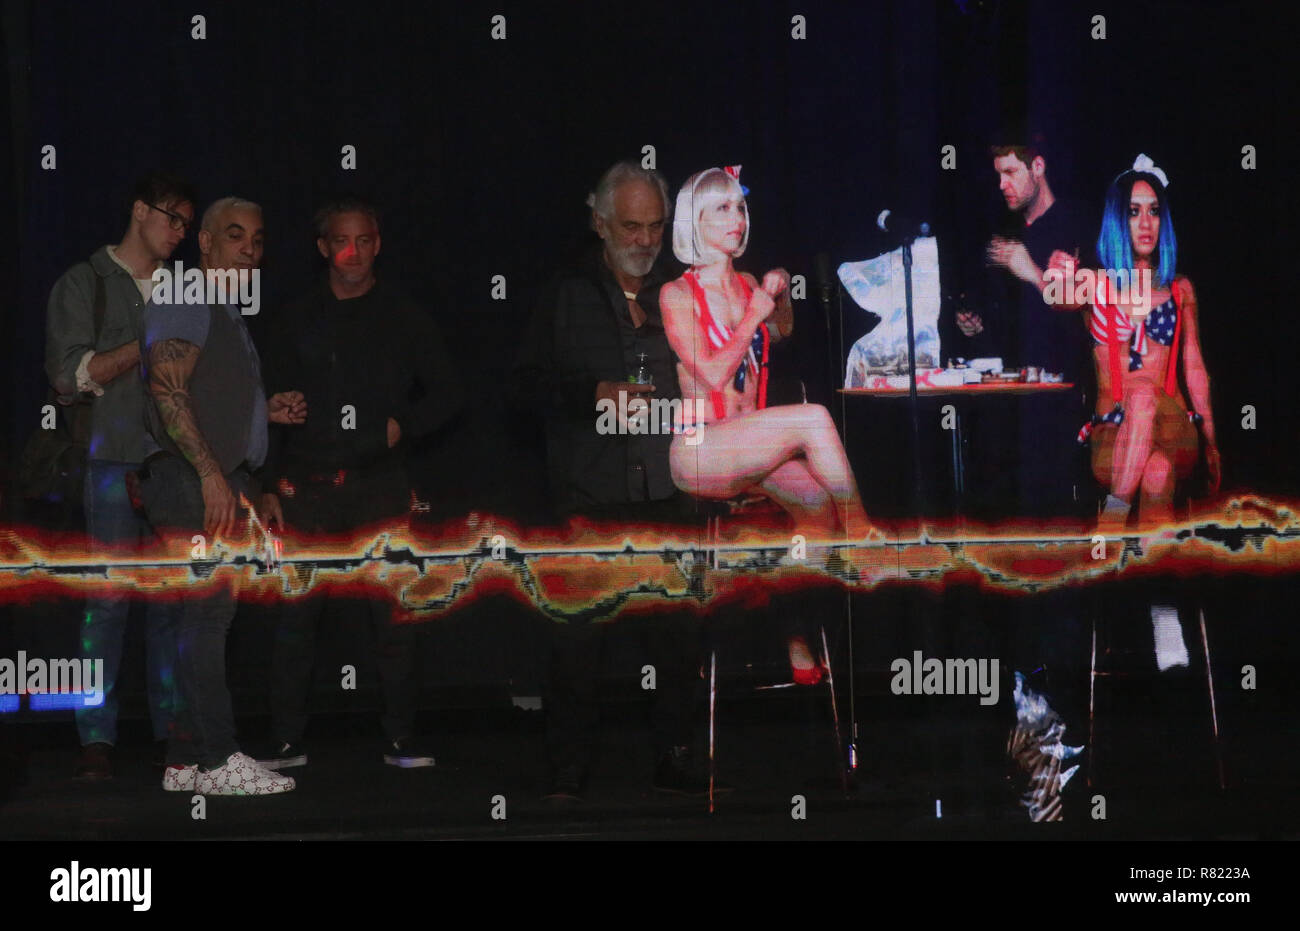 9cc2bac5 Tommy Chong becomes a hologram at Swissx event at Hologram USA Theatre  Featuring: Sam Braslow